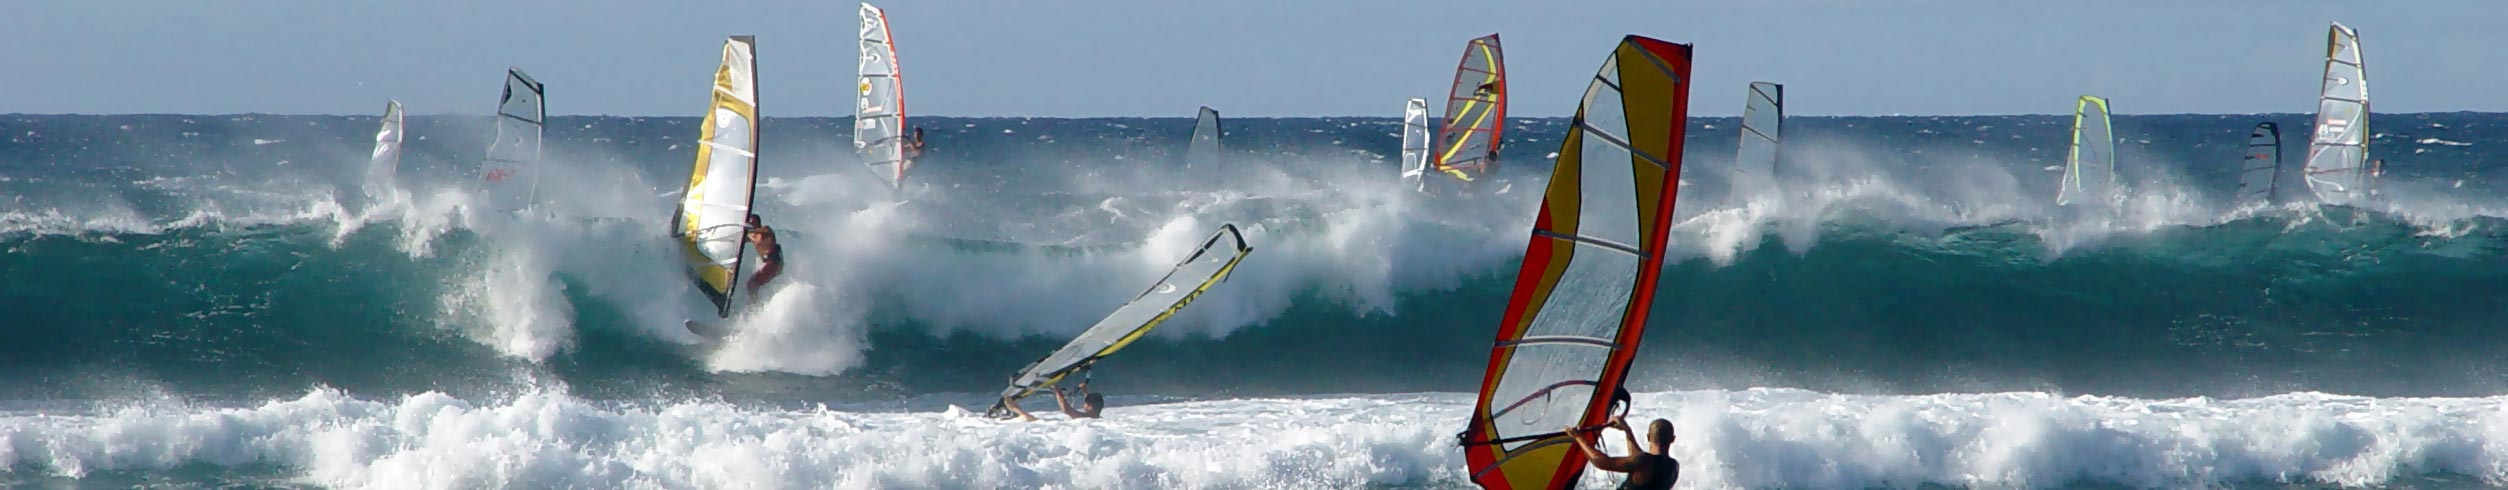 Windsurfing was invented on Hayling Island